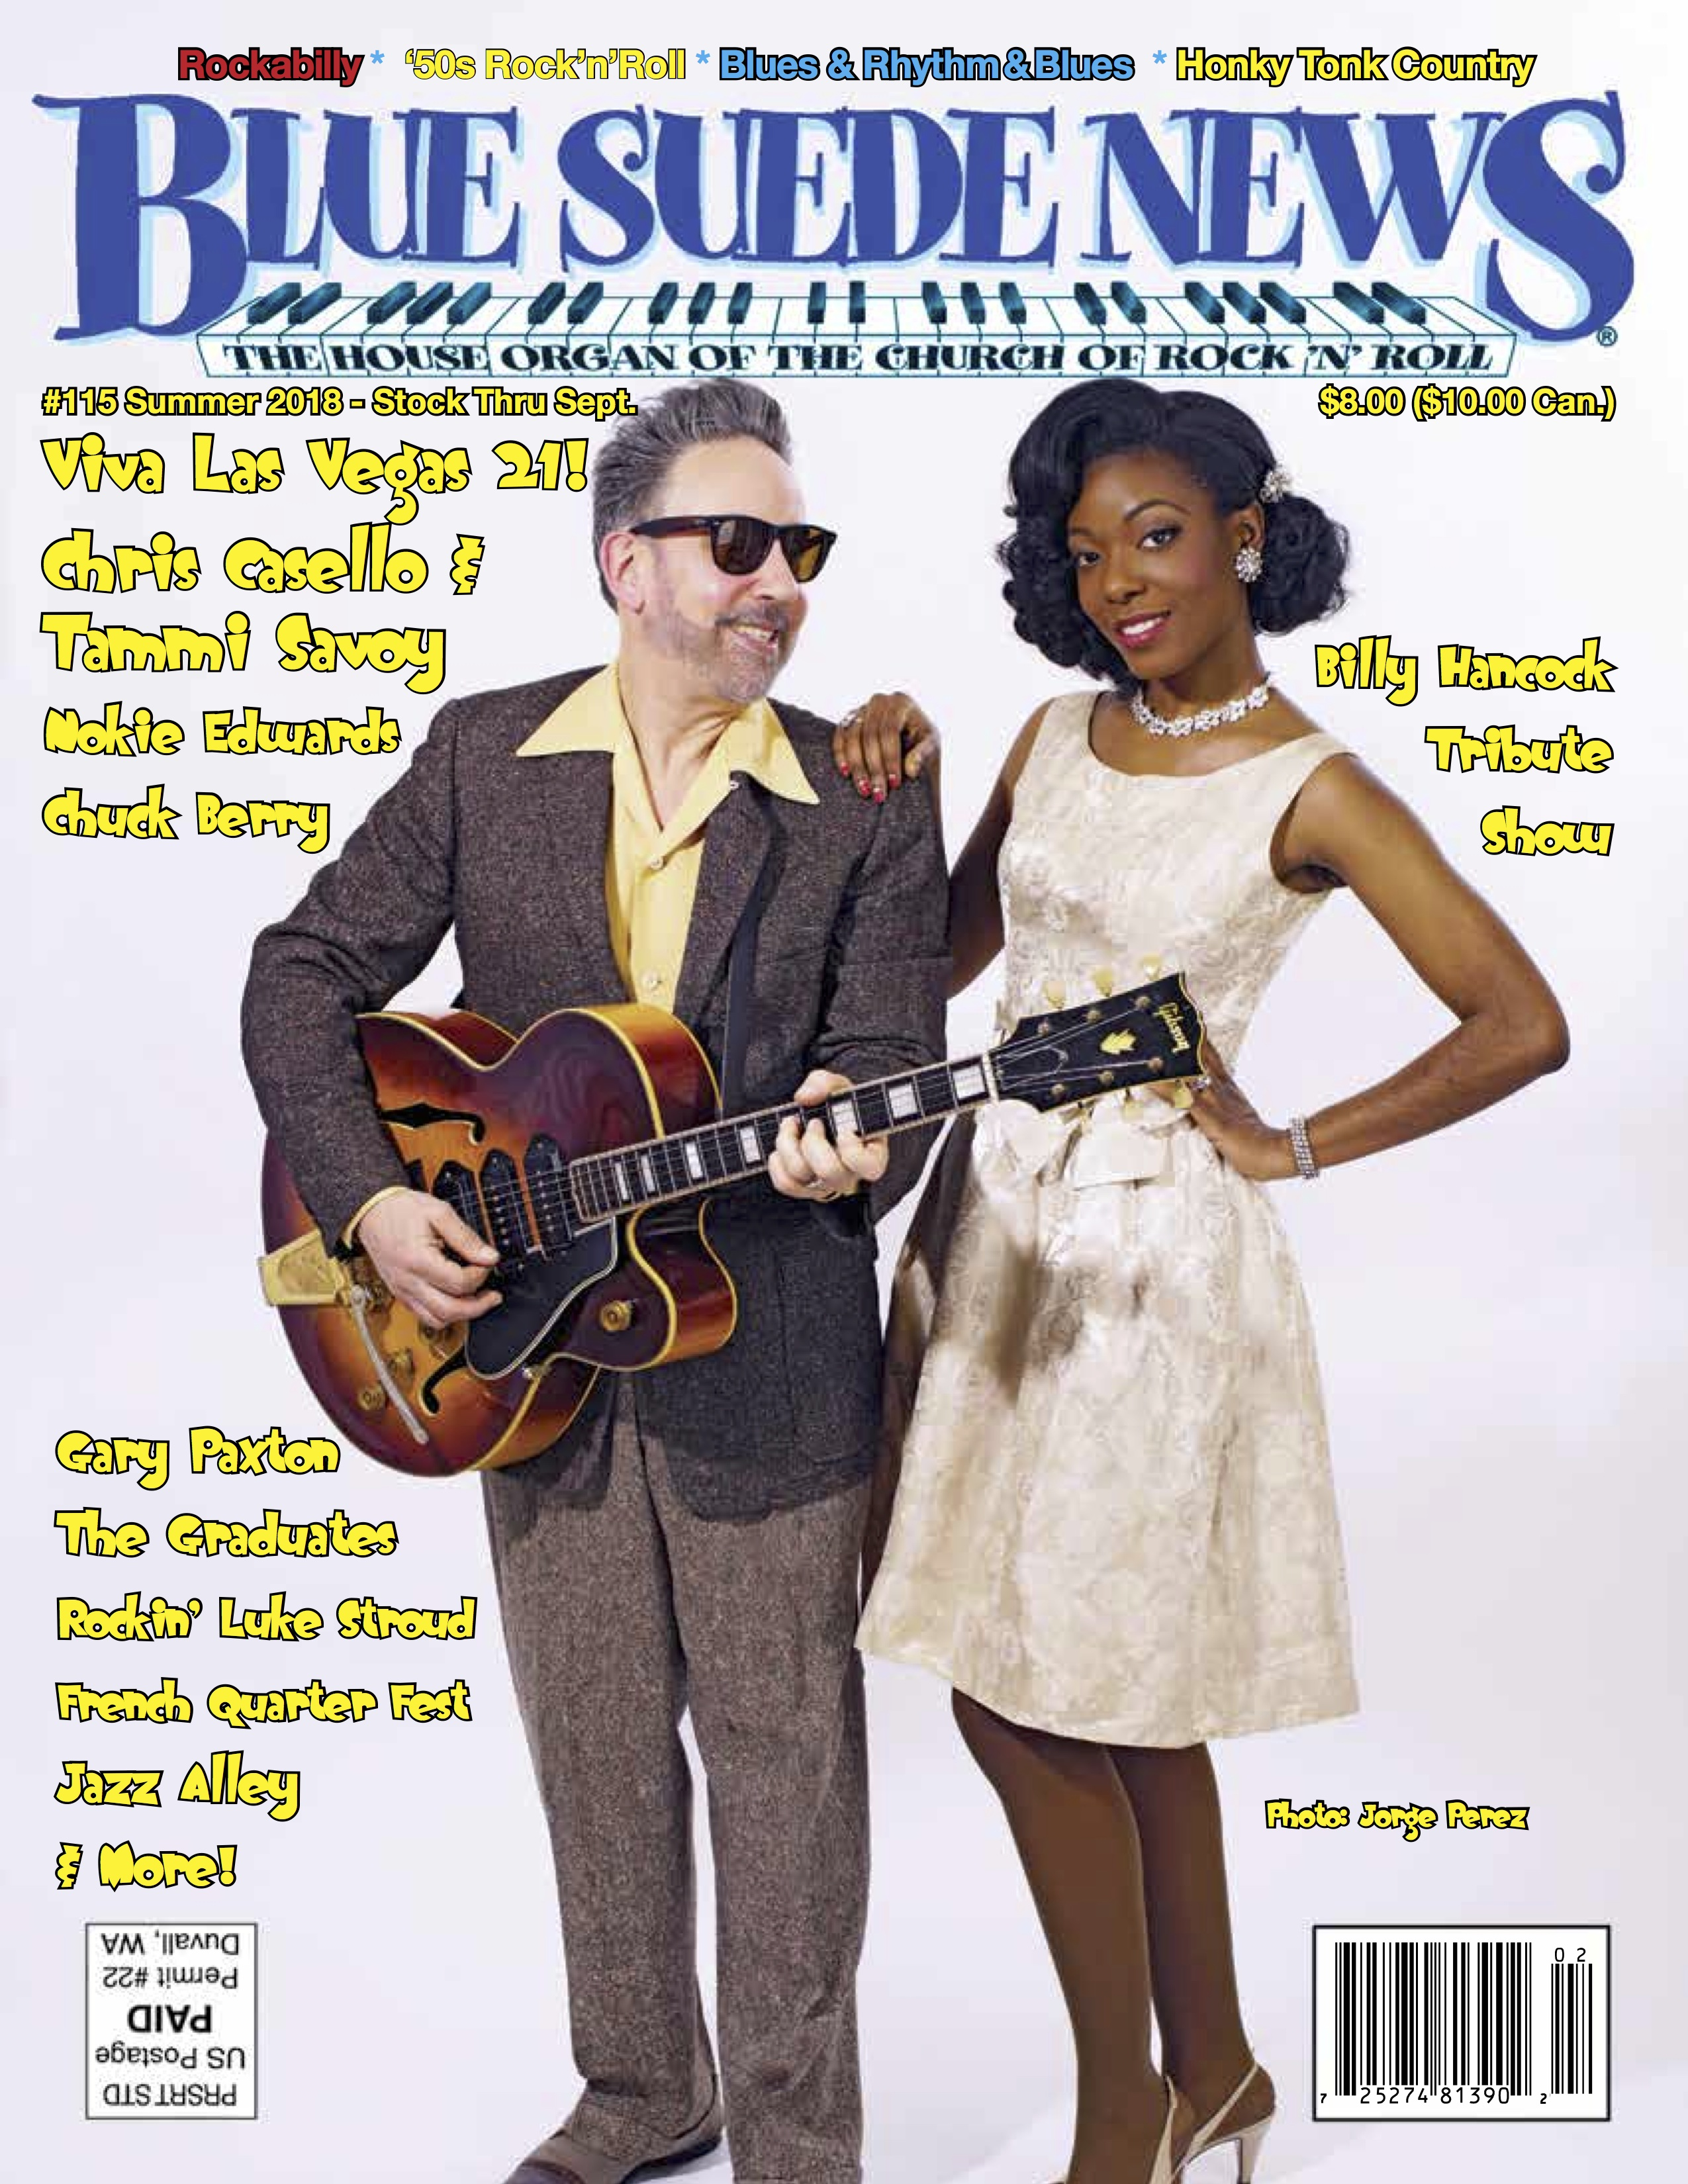 Blue Suede News Pdf Editions Rockabilly Rhythm And Blues Real Country Music Doo Surf 50s Rock N Roll Garage